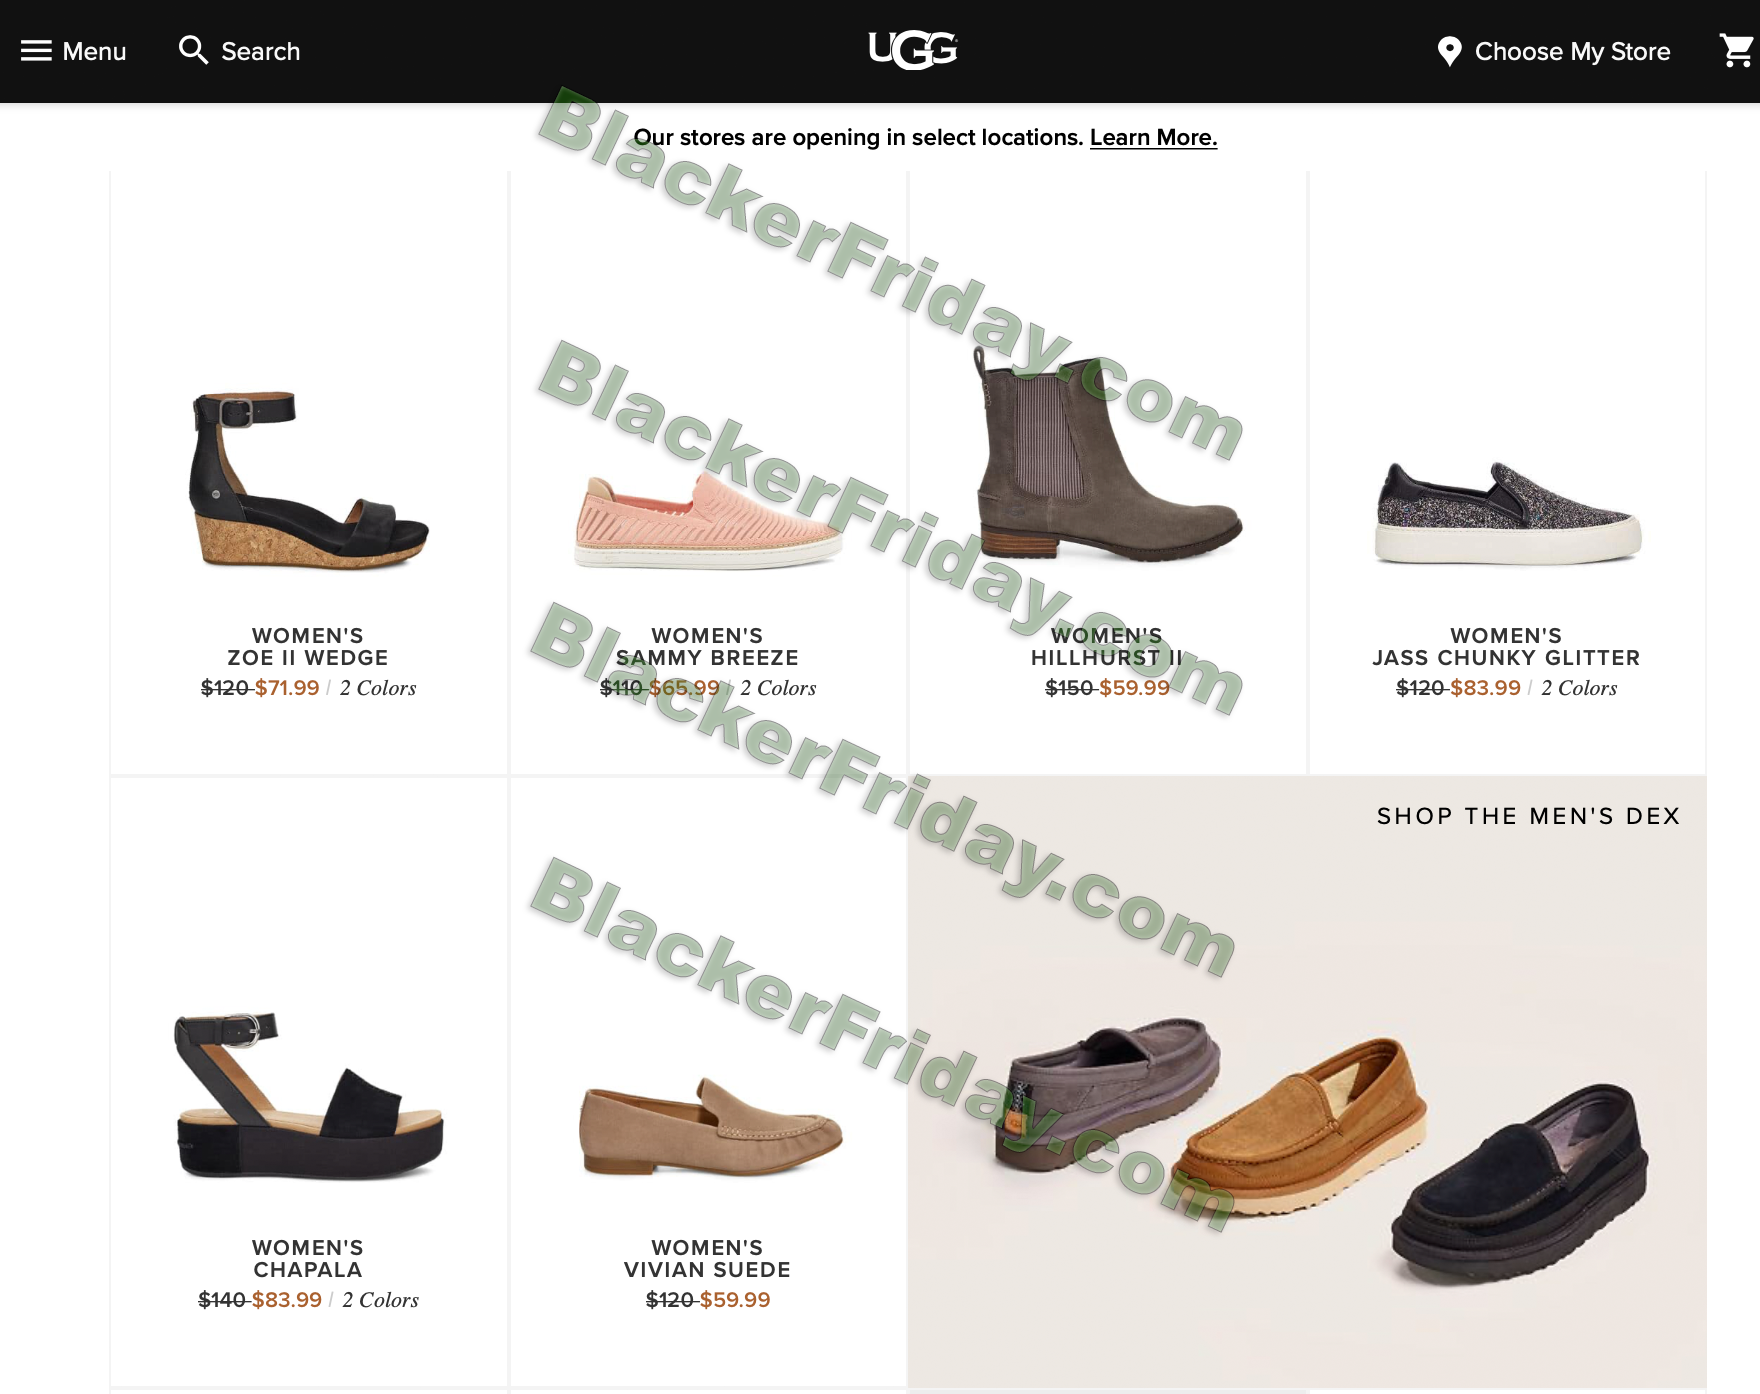 Ugg Labor Day Sale 2020 Blacker Friday